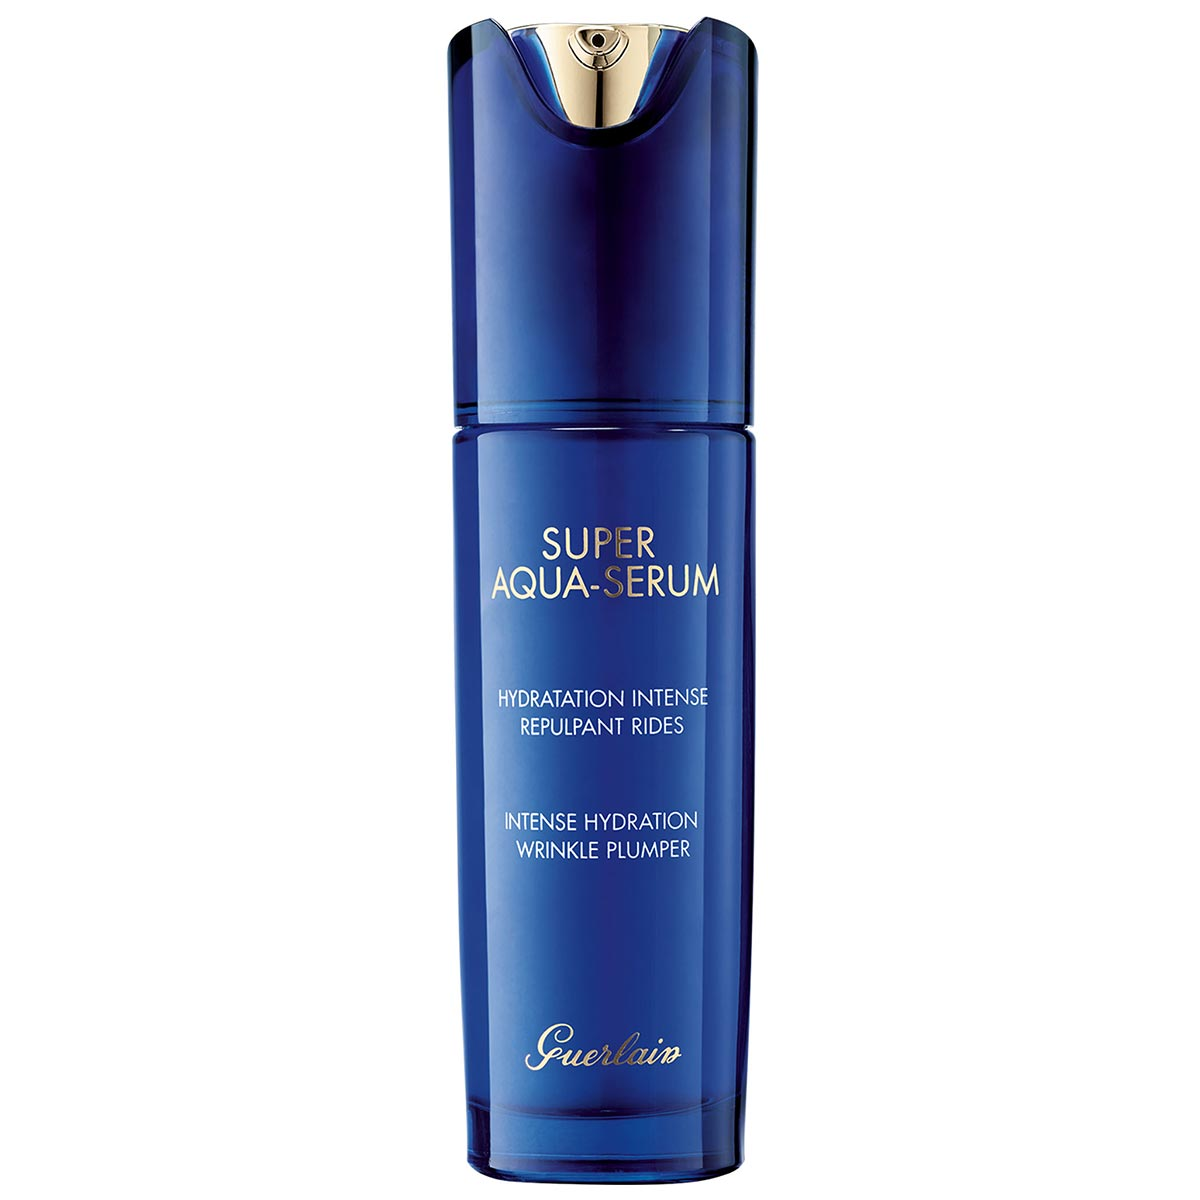 Super Aqua-Serum - GUERLAIN